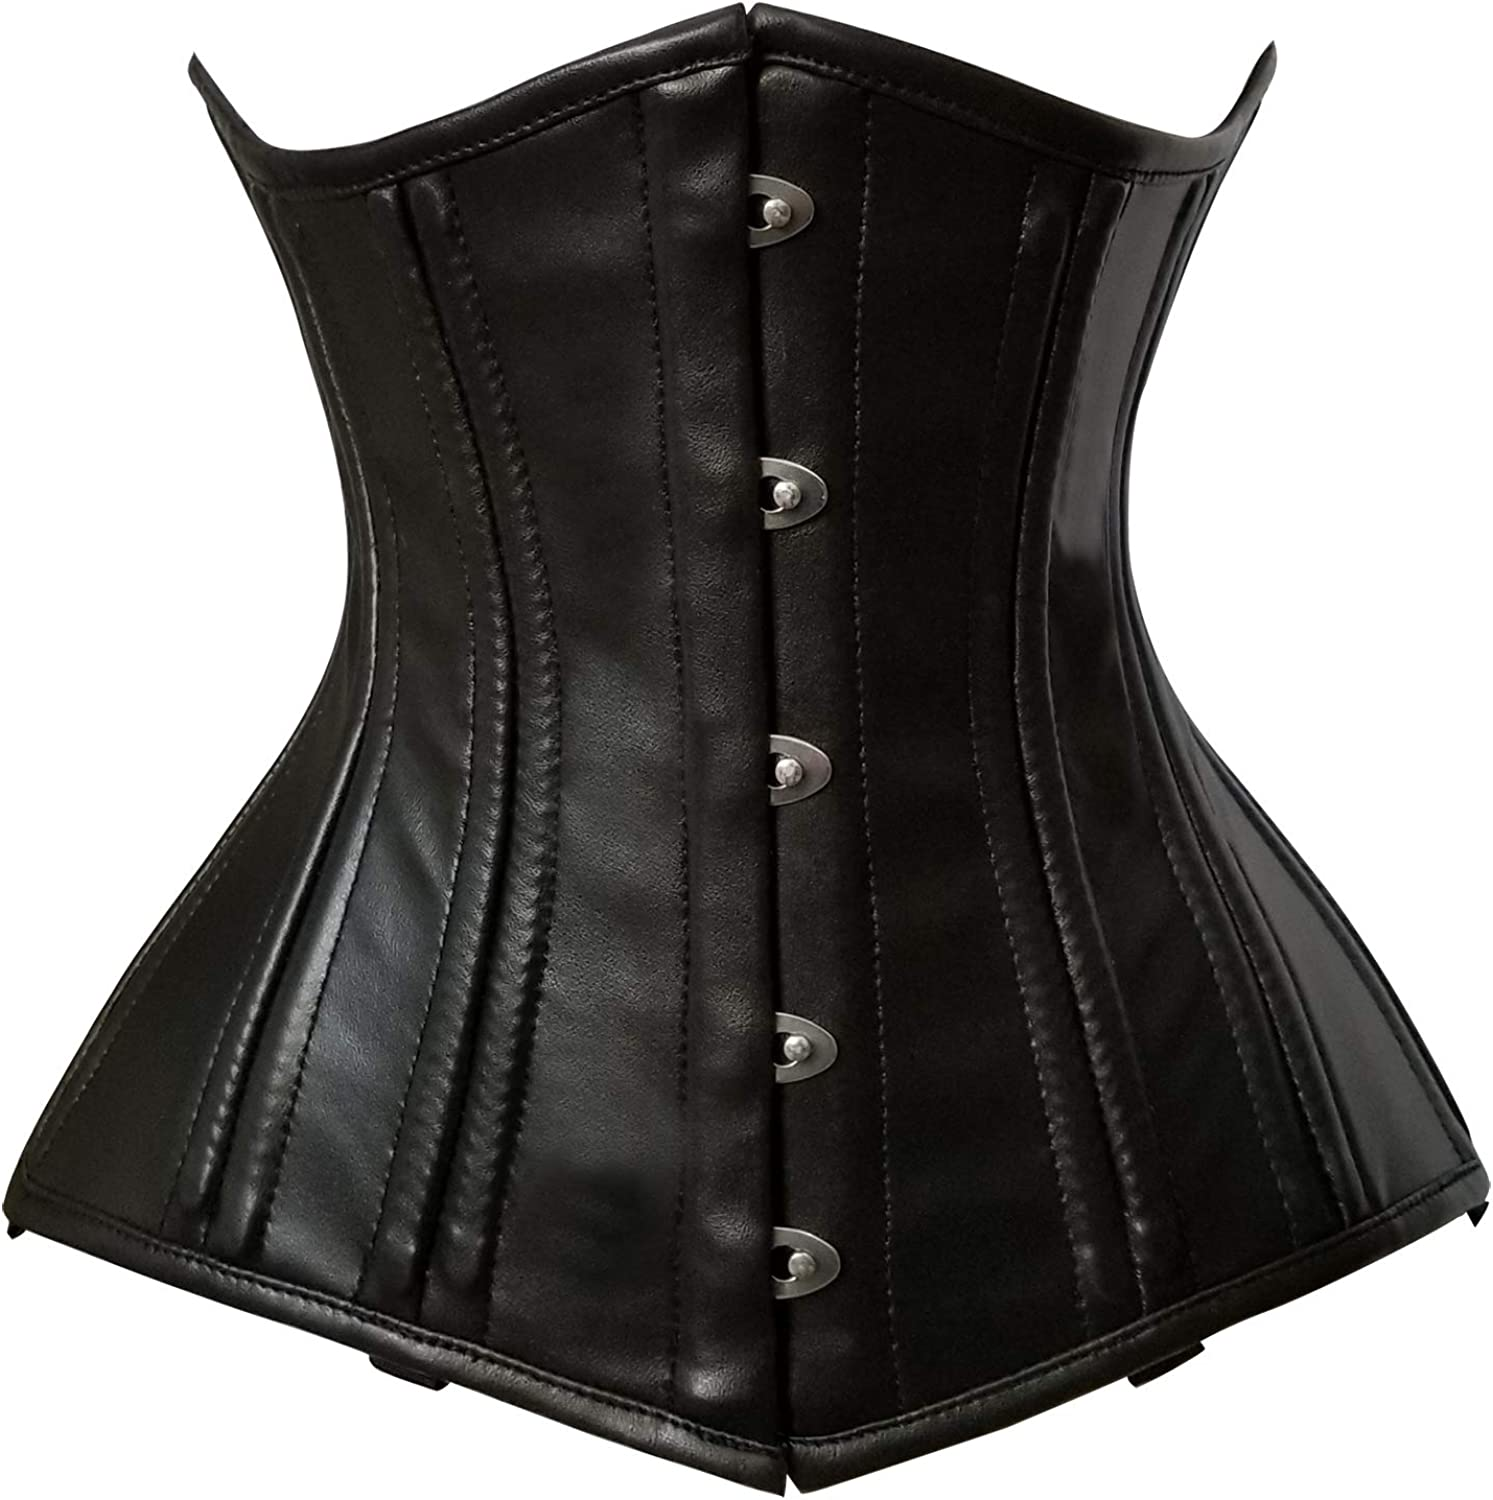 Supper Waist Cincher Tight Lacing Hourglass Heavy Duty Cotton /& Leather Corsets